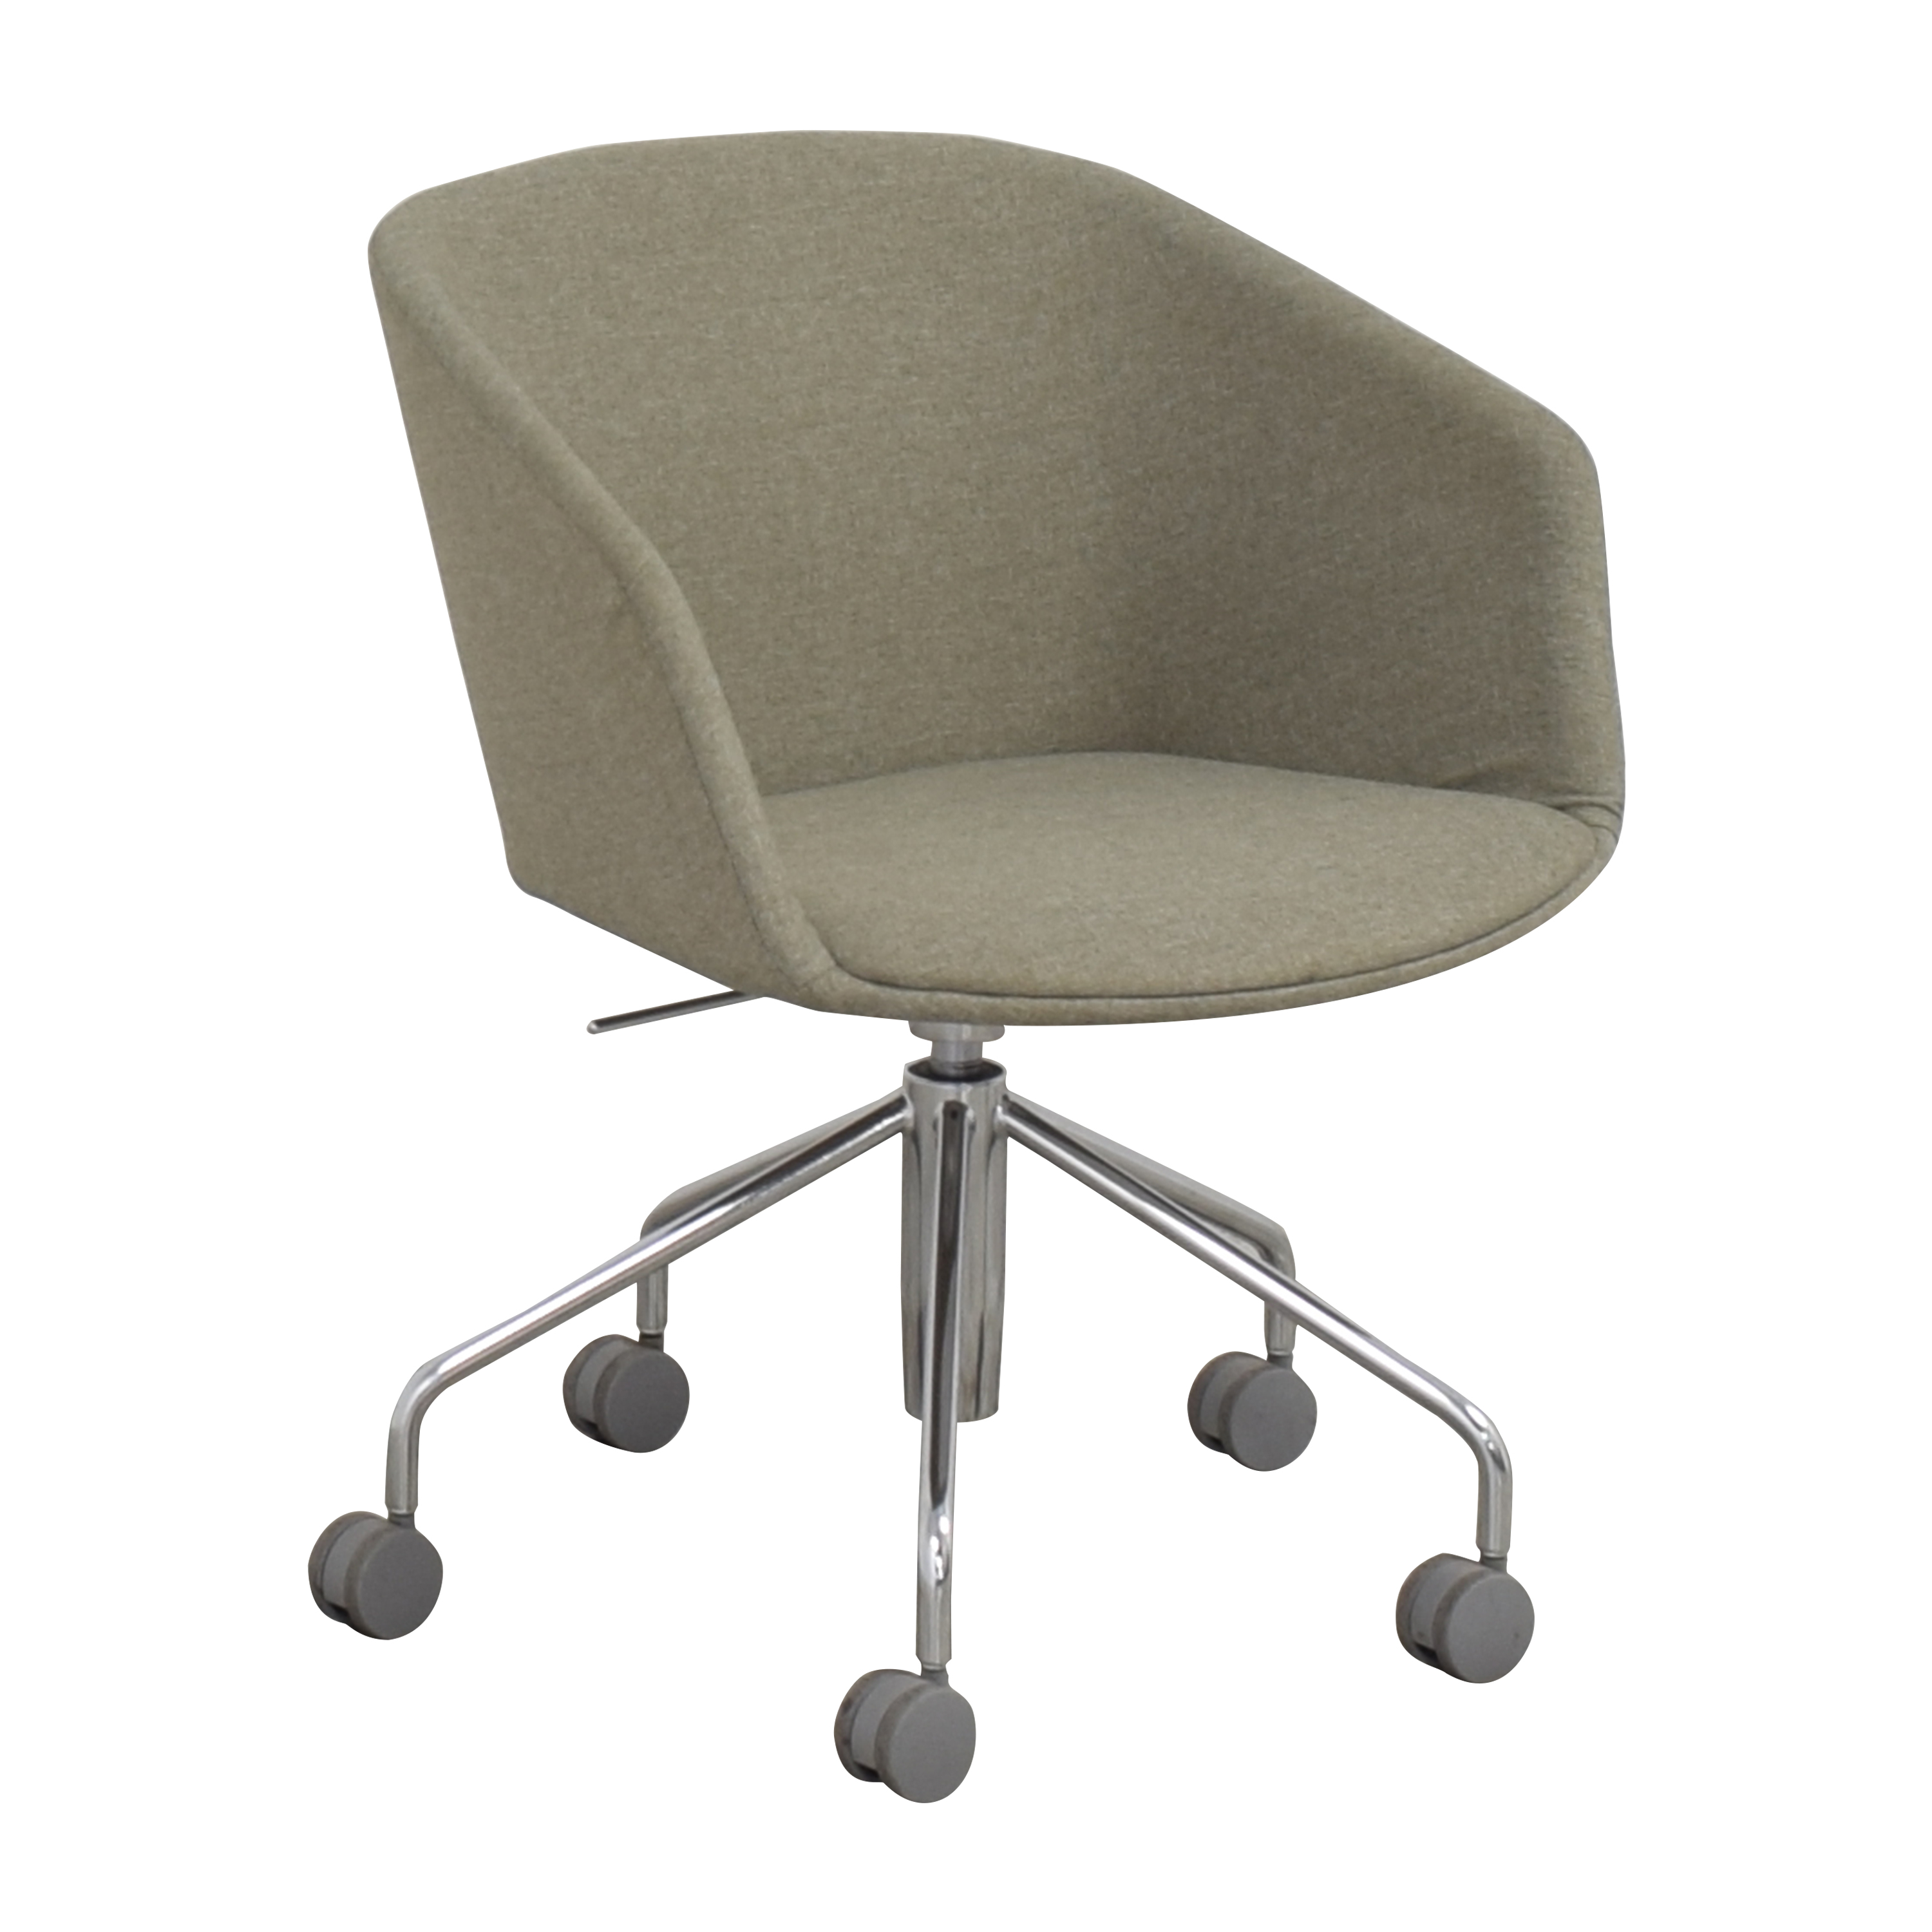 shop Poppin Pitch Meeting Chair Poppin Chairs